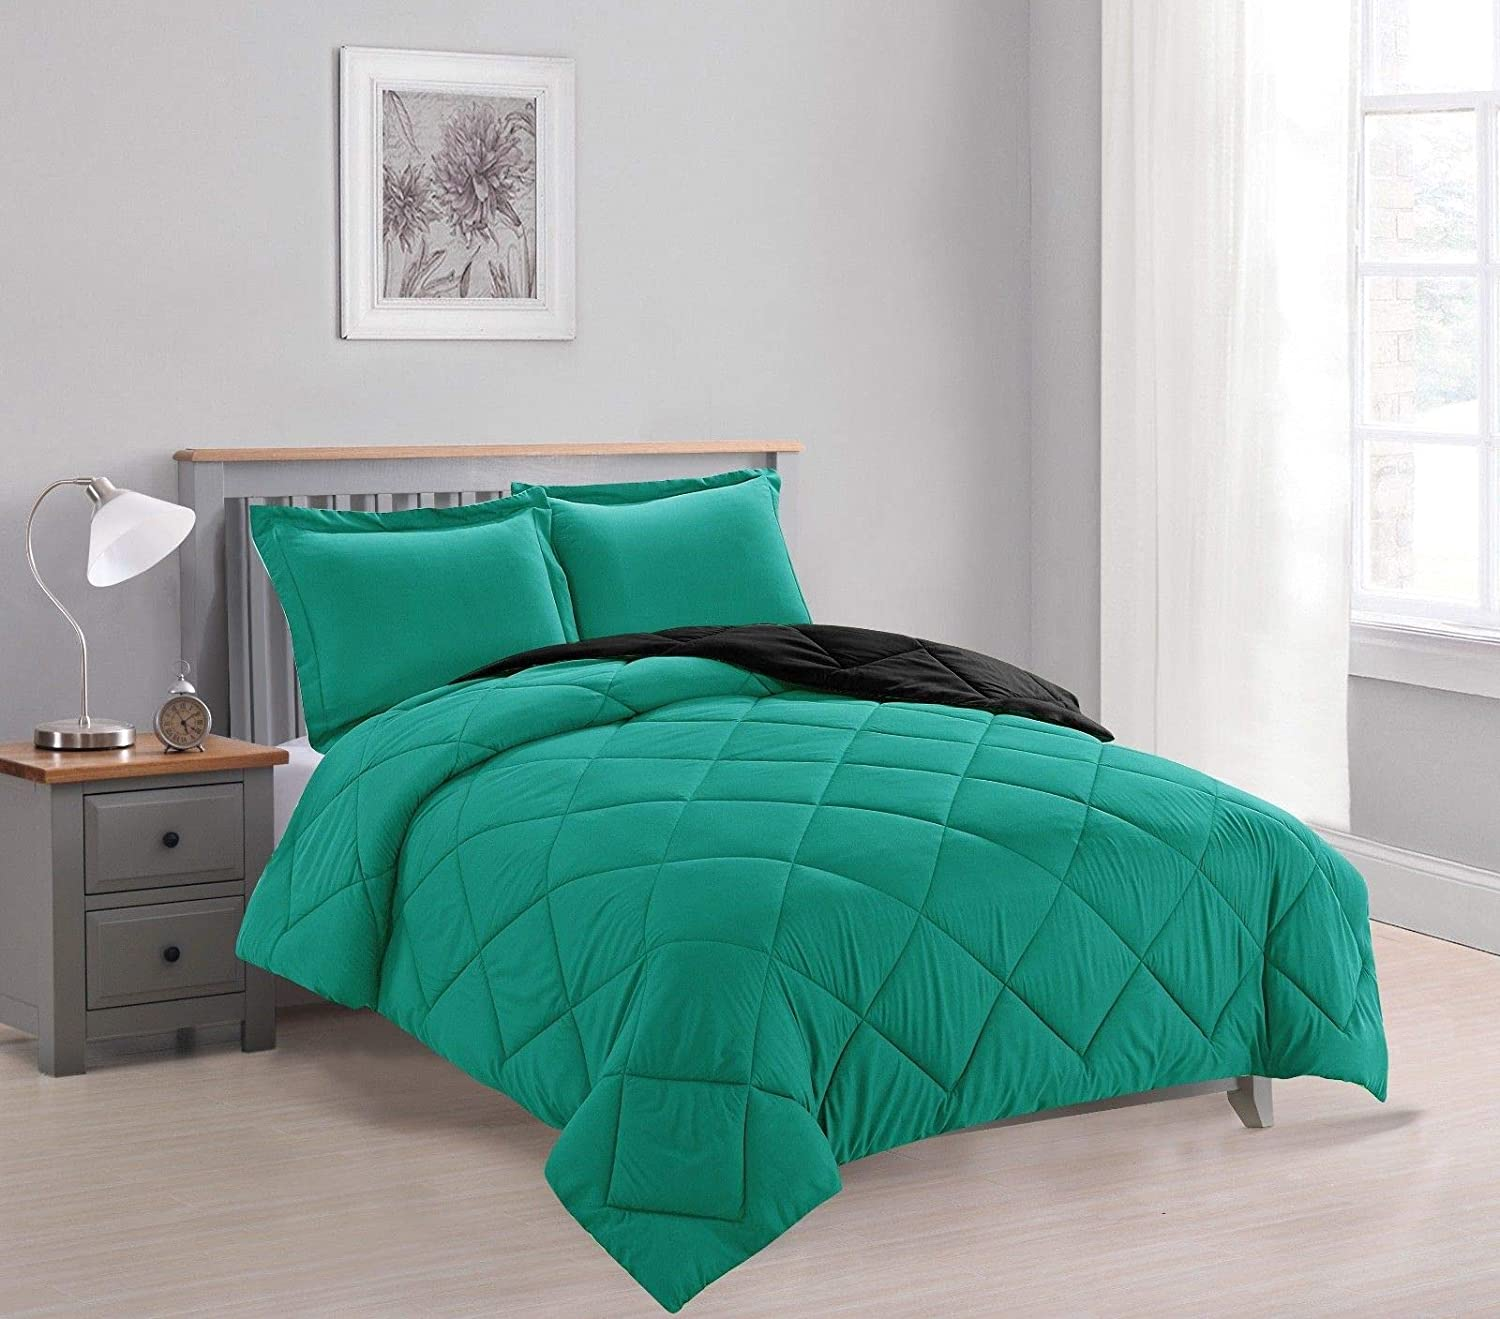 Dayton 3-Piece Reversible Down Alternative Solid Comforter Set - Teal & Black